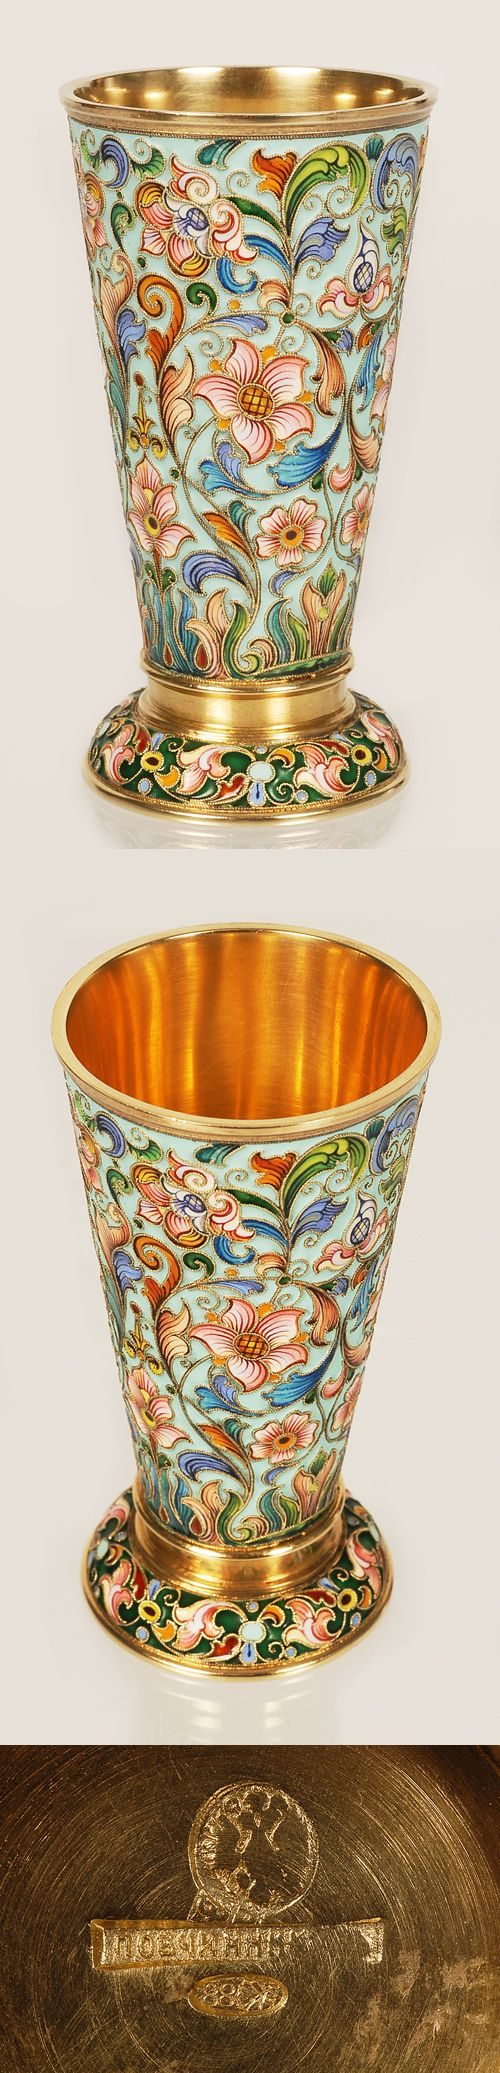 A Russian silver gilt and shaded cloisonne enamel beaker, workmaster Feodor Ruckert, Moscow, circa 1896-1908. GORGEOUS